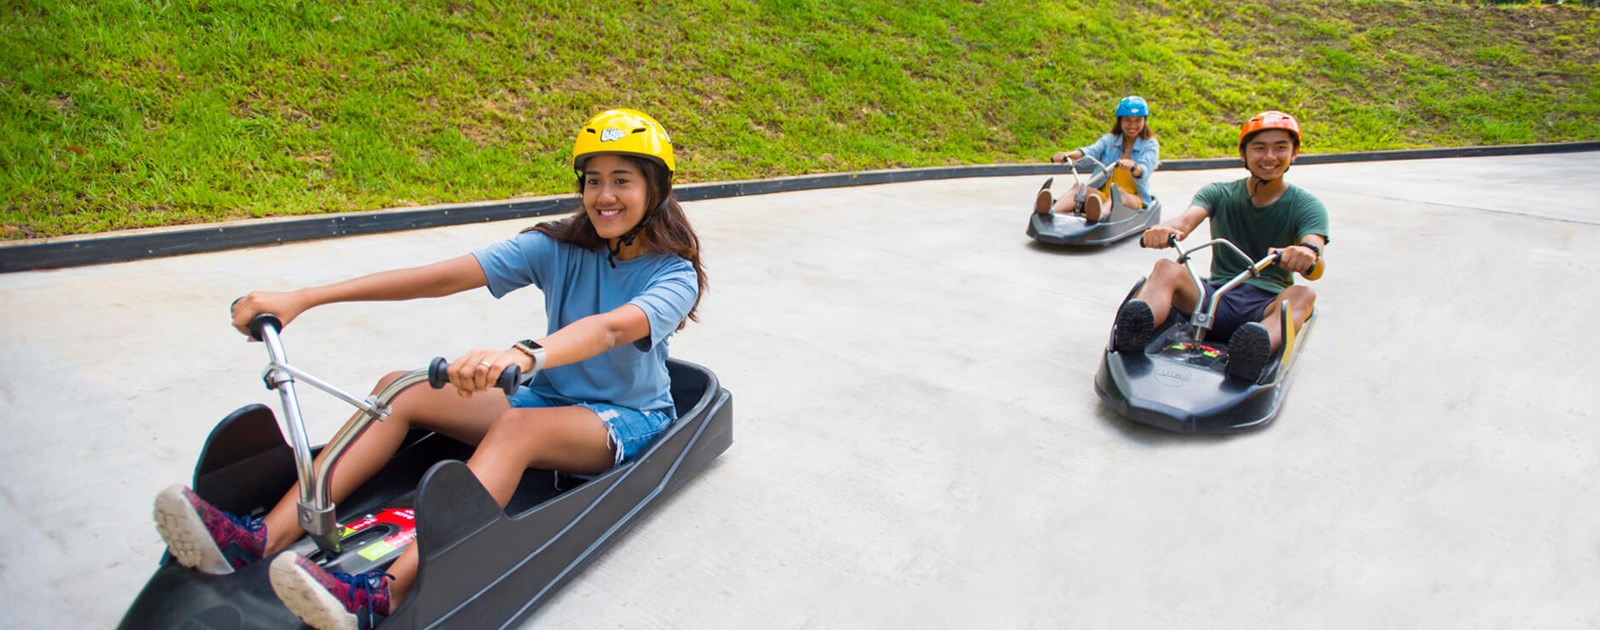 Three Friends Racing Down The Luge Track Together at Skyline Luge Sentosa.